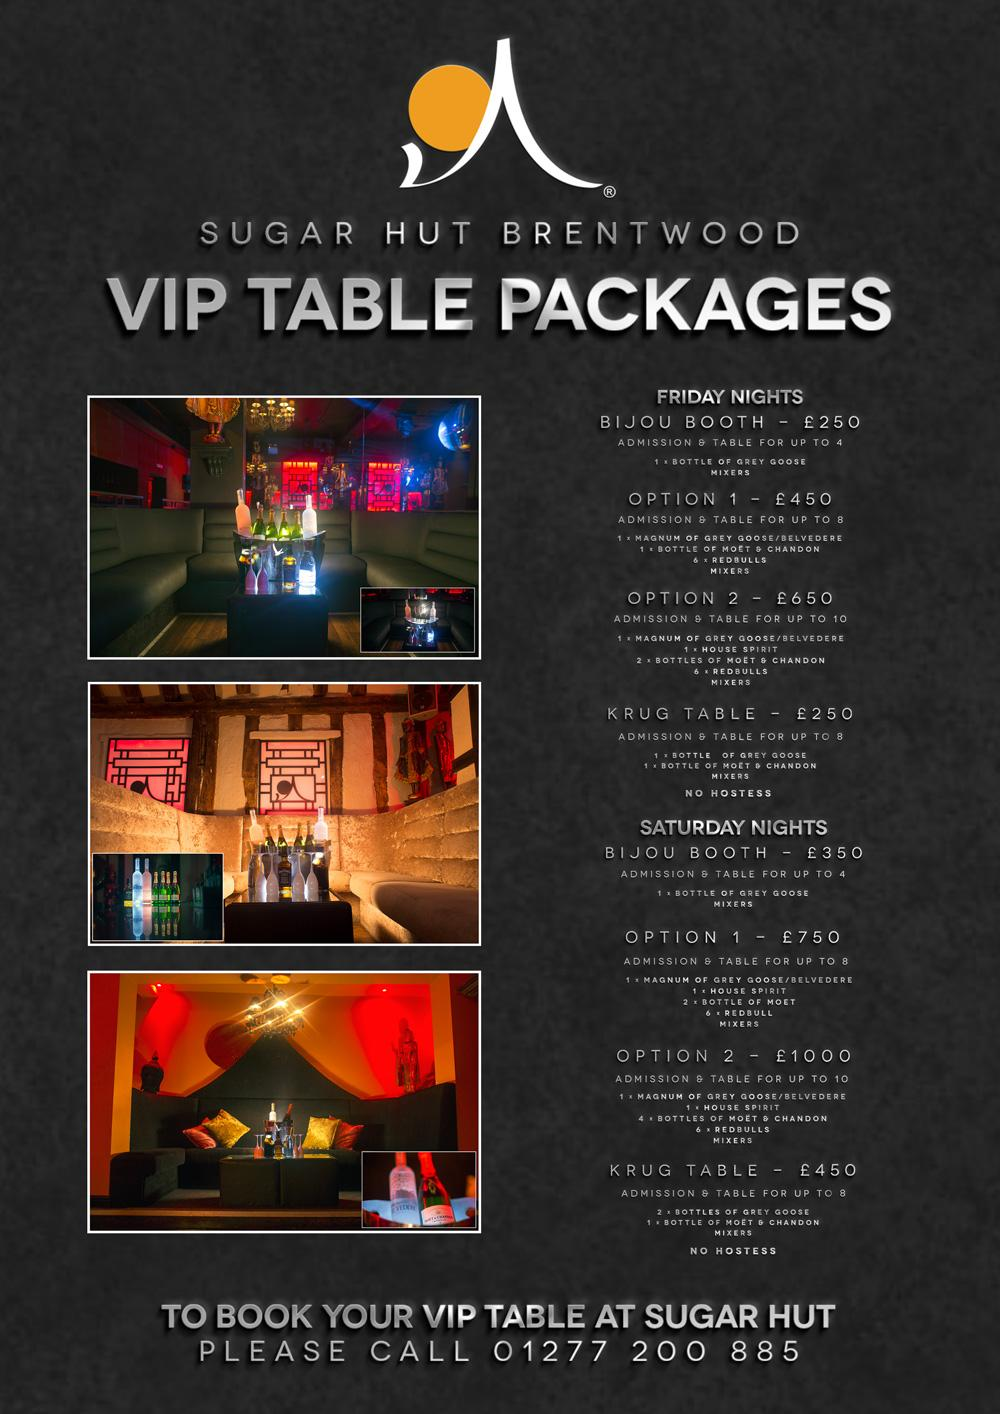 Limited tables available for this weekend please call us on 01277 200885 to secure yours http://t.co/iVeAYy7xsp